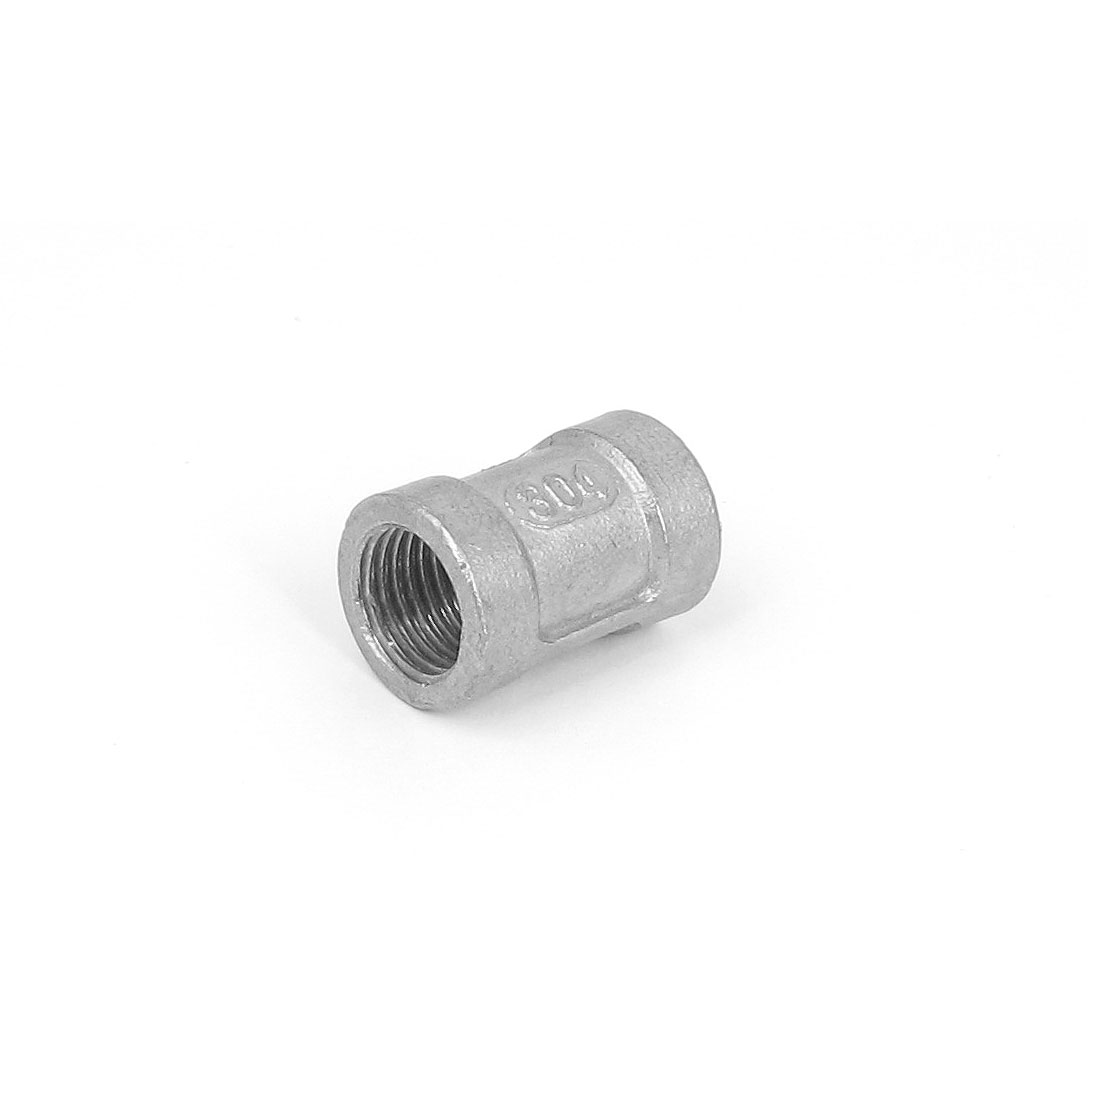 1/4BSP Female Threaded 304 Stainless Steel Pipe Coupling Fitting Connector